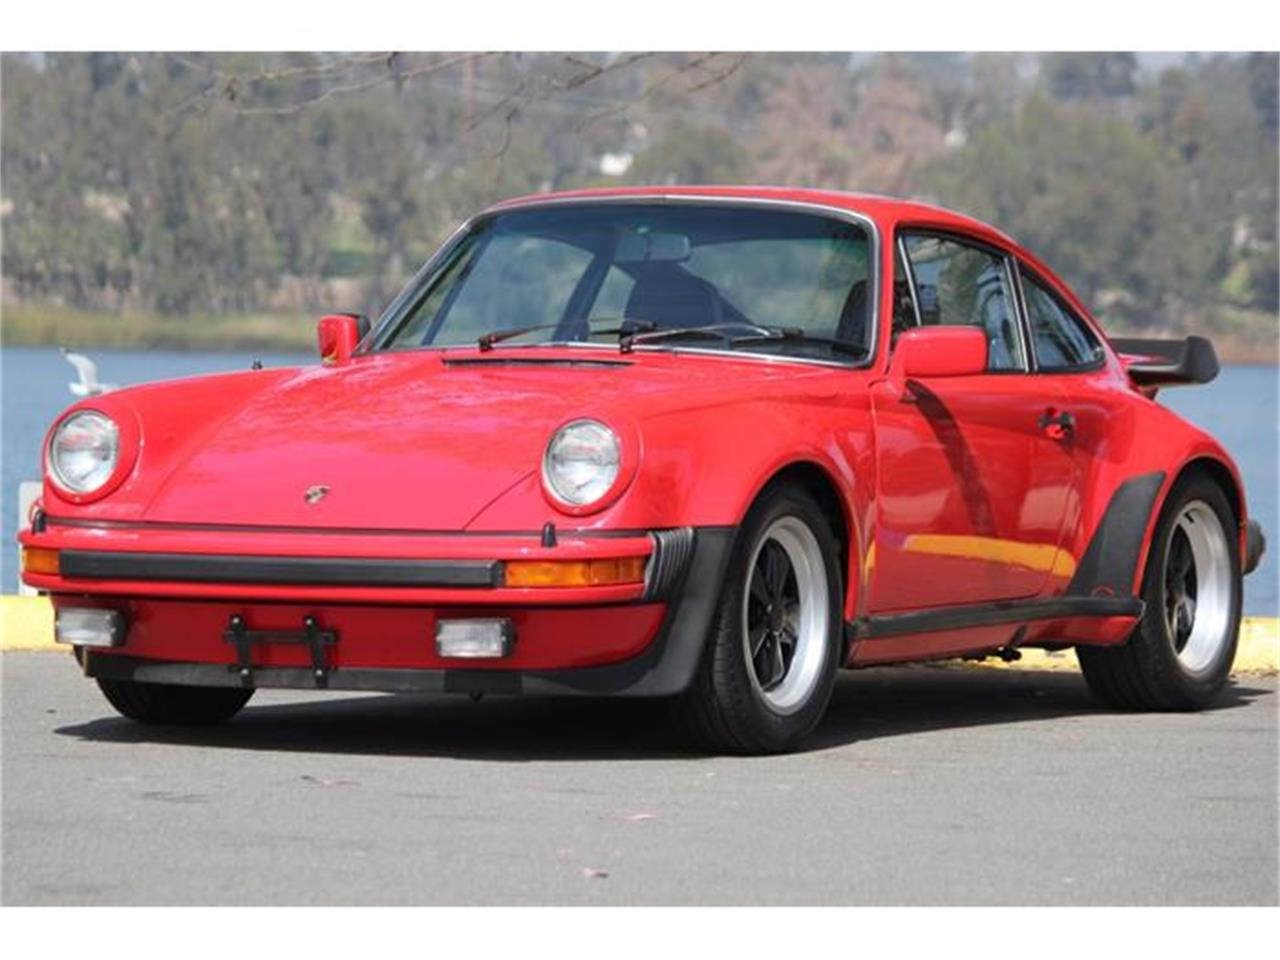 Large Picture of '79 Porsche 930 Turbo Offered by Precious Metals - GOQB